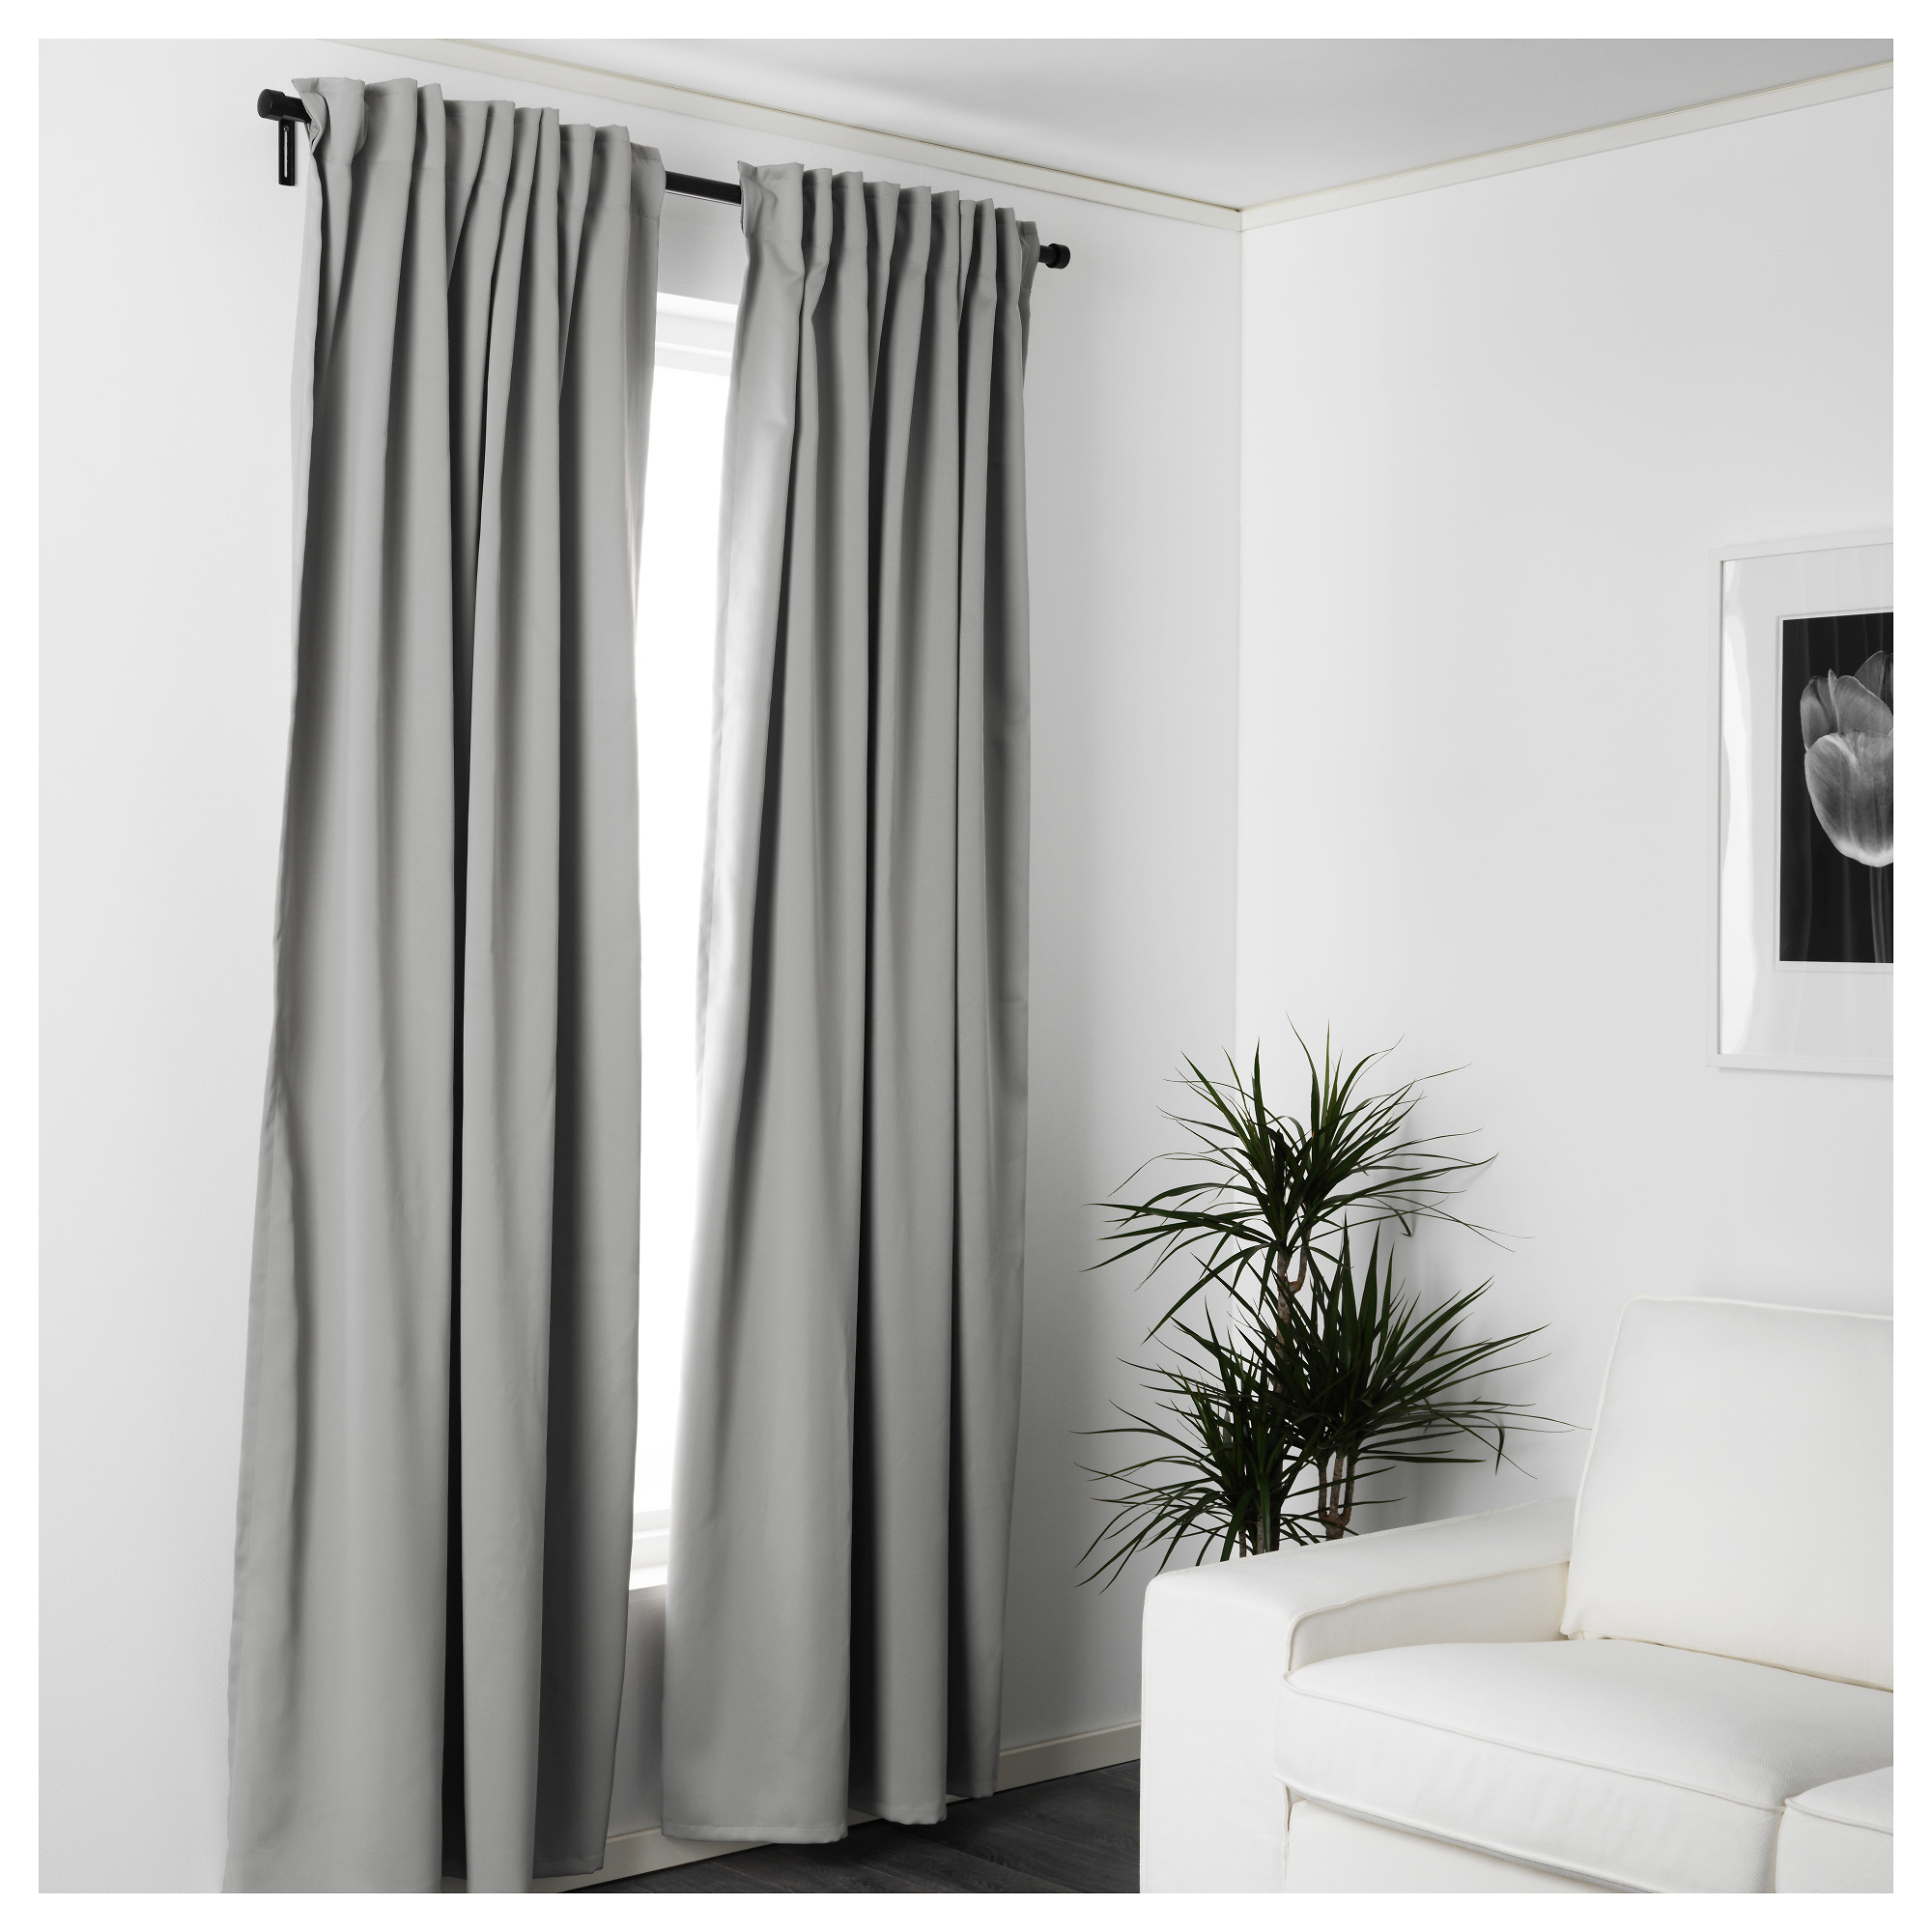 foundry and rod curtain pocket black pdx opaque window white wayfair drapes farmhouse damask laurel semi panels modern livio treatments reviews